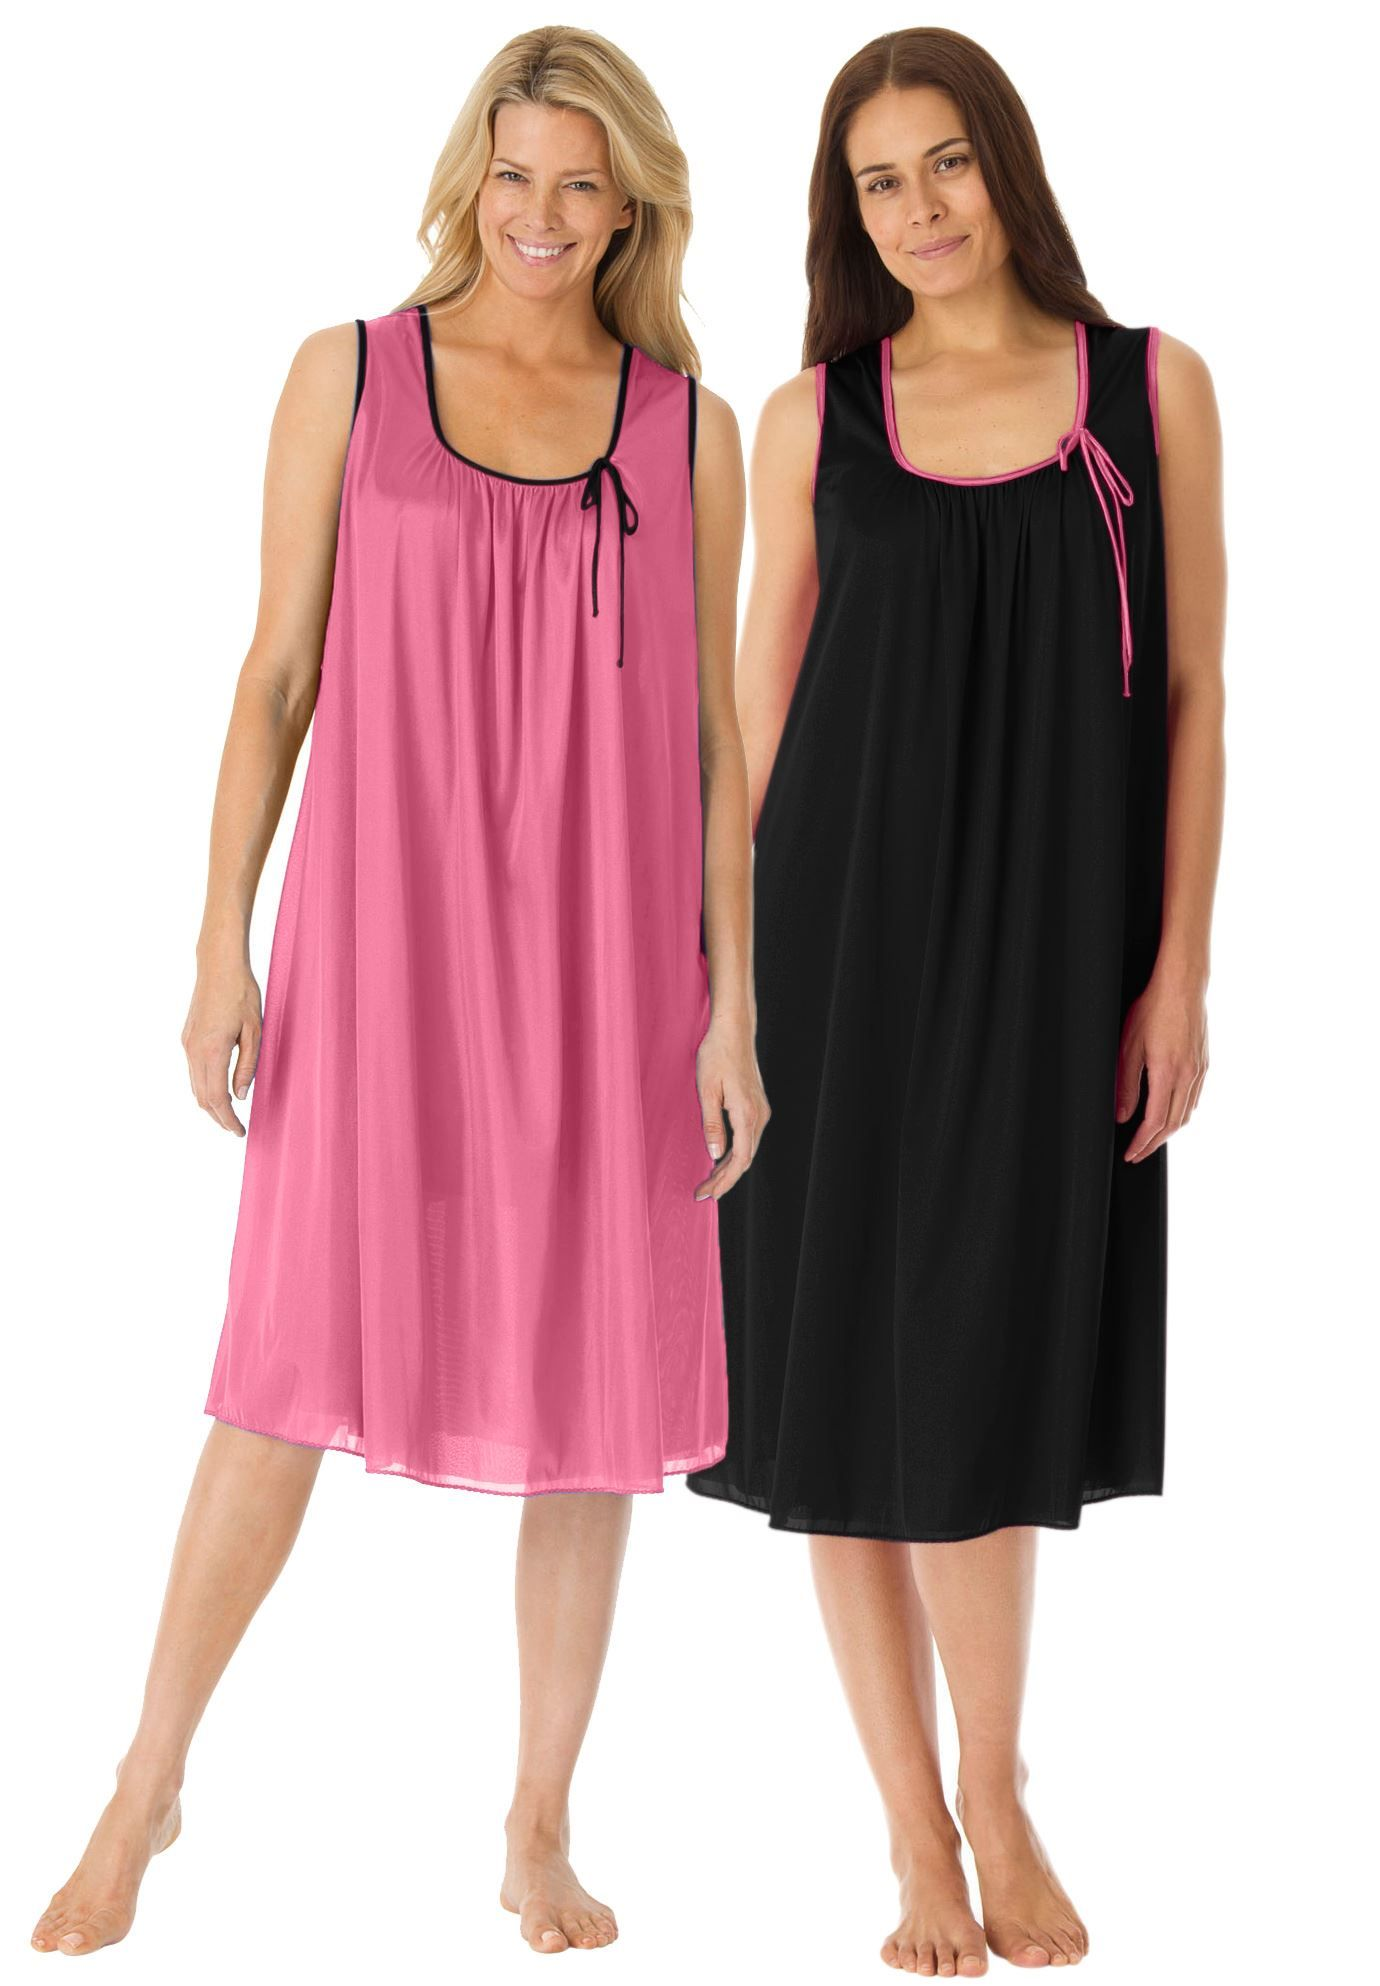 28a94069f7d 2-pack sleeveless tricot night gown by Only Necessities - Women s Plus Size  Clothing